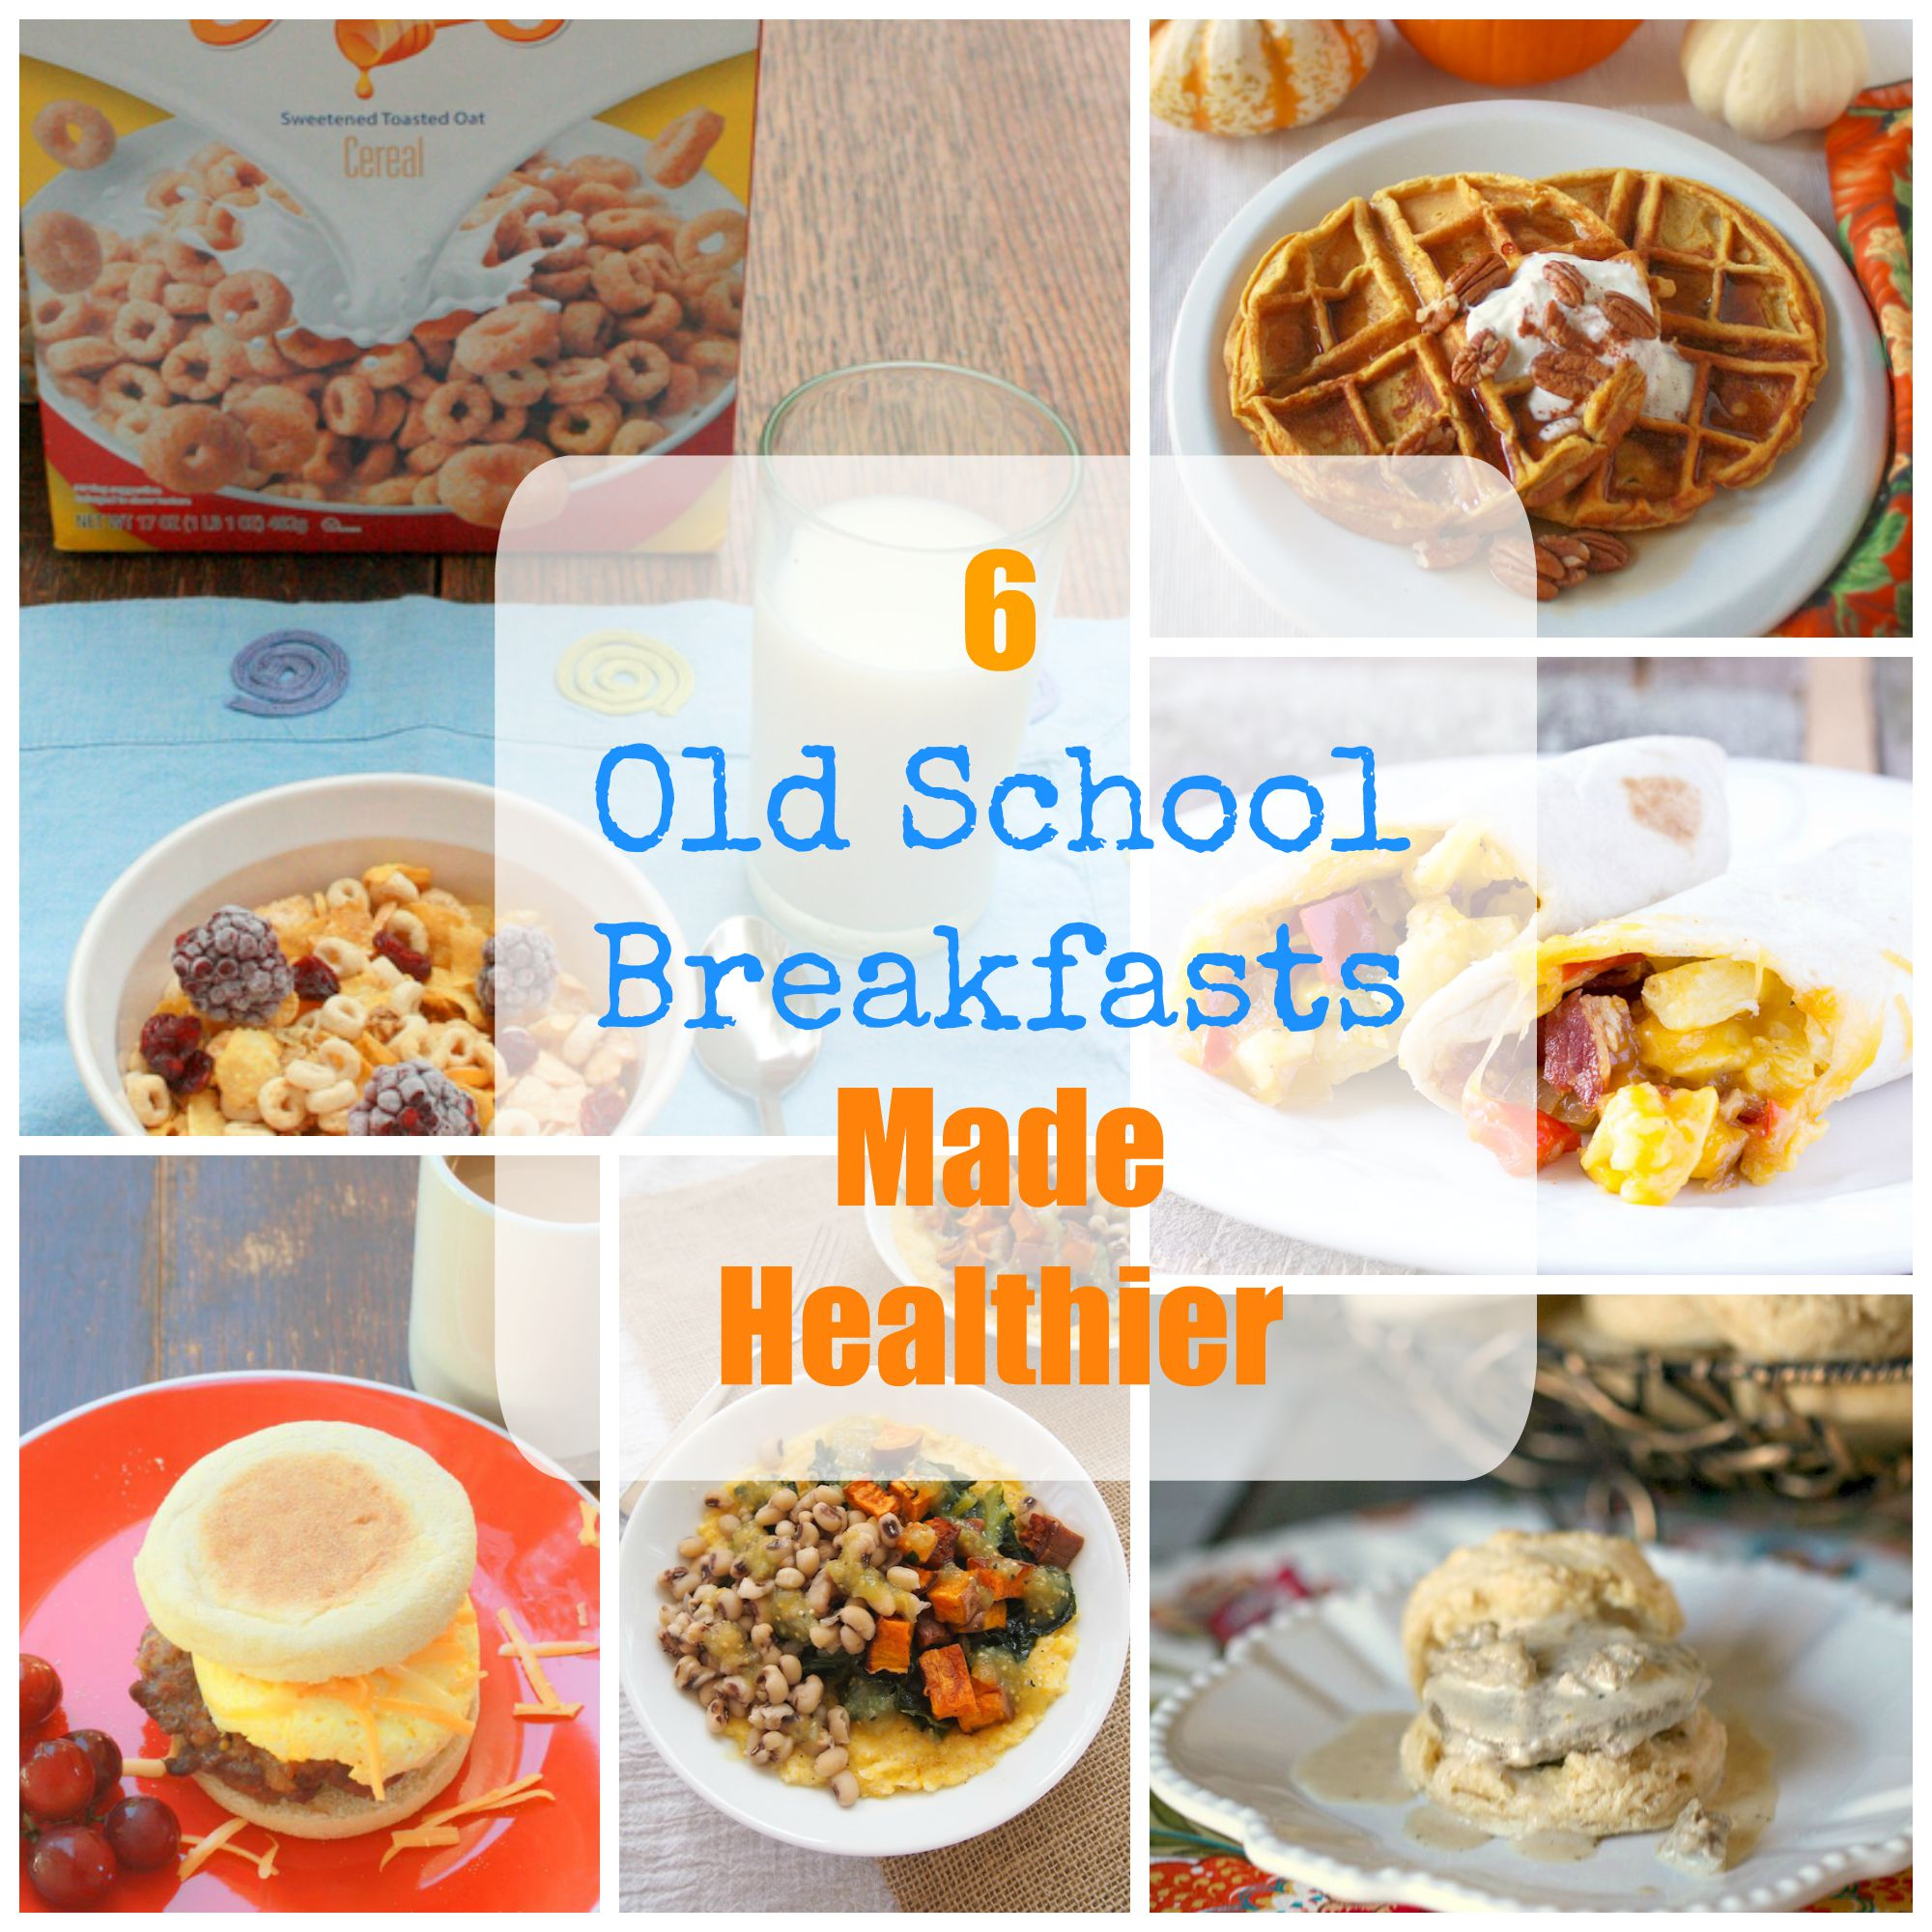 Comfort Food Breakfasts - How to make healthy biscuits and gravy * How to make healthy grits * Which cereal is healthy * How to make a Sausage Breakfast Sandwich * How to make Pumpkin Waffles